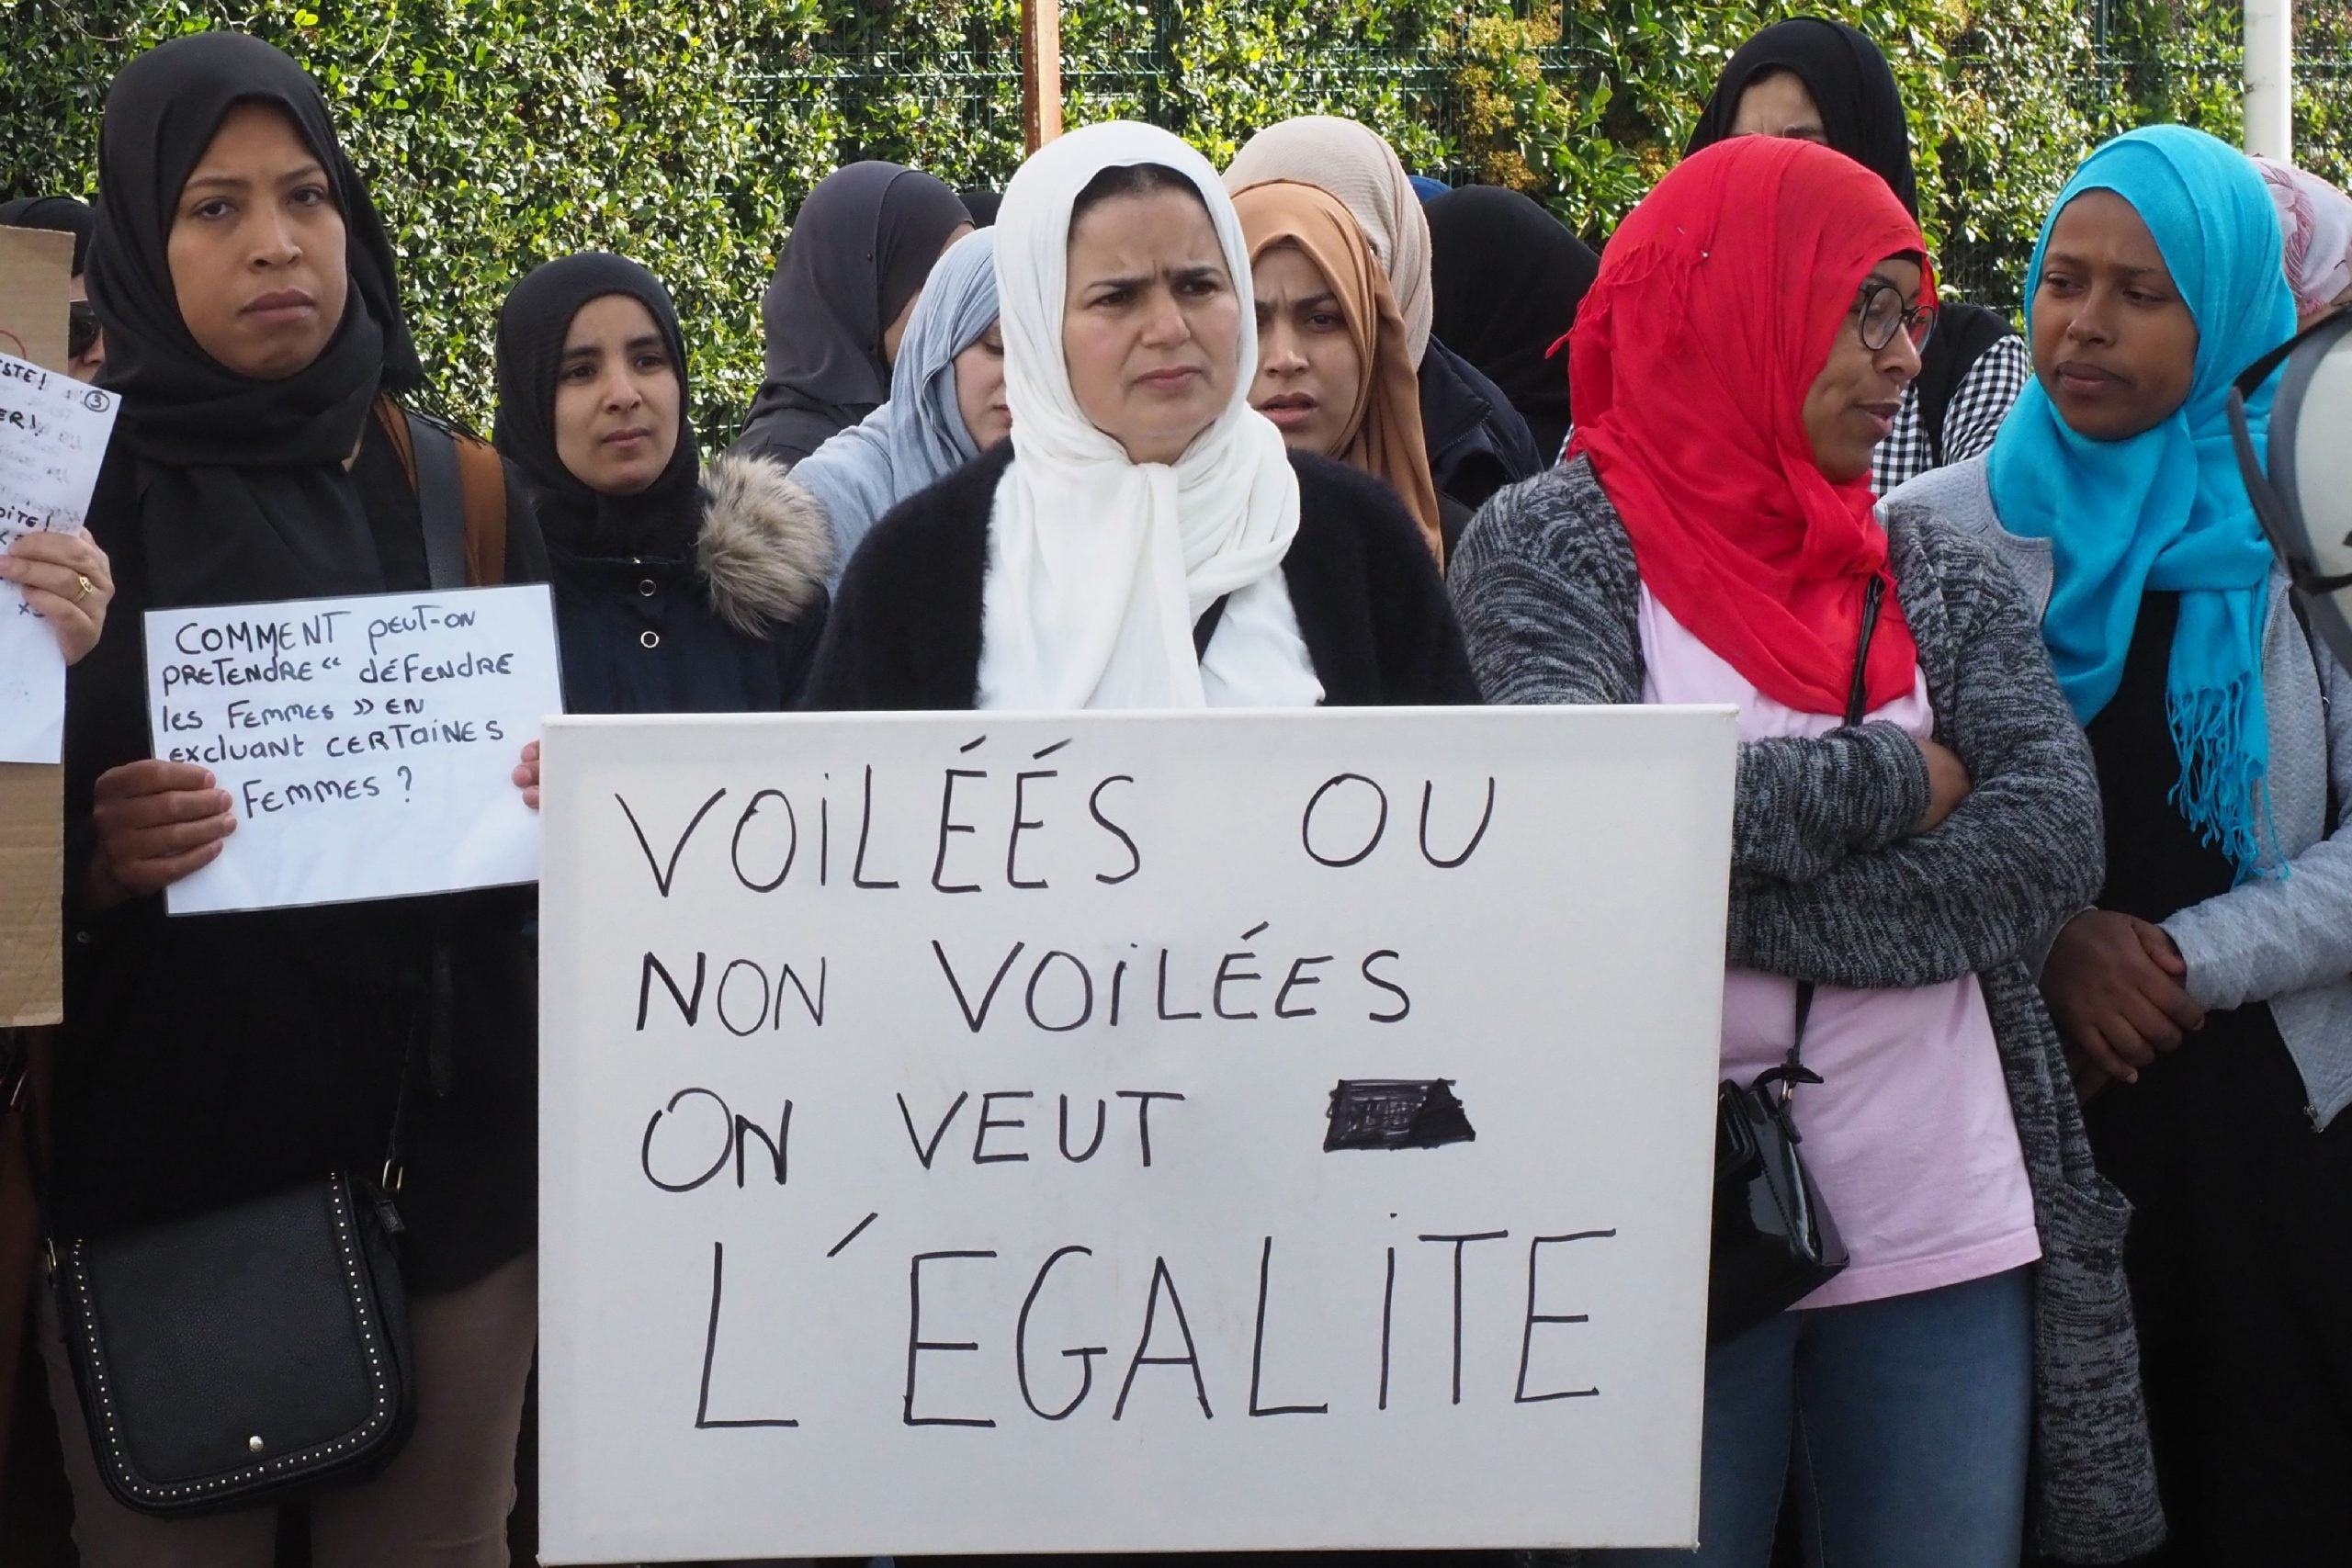 How a new headscarf row has reignited French divisions over Islam and secularism